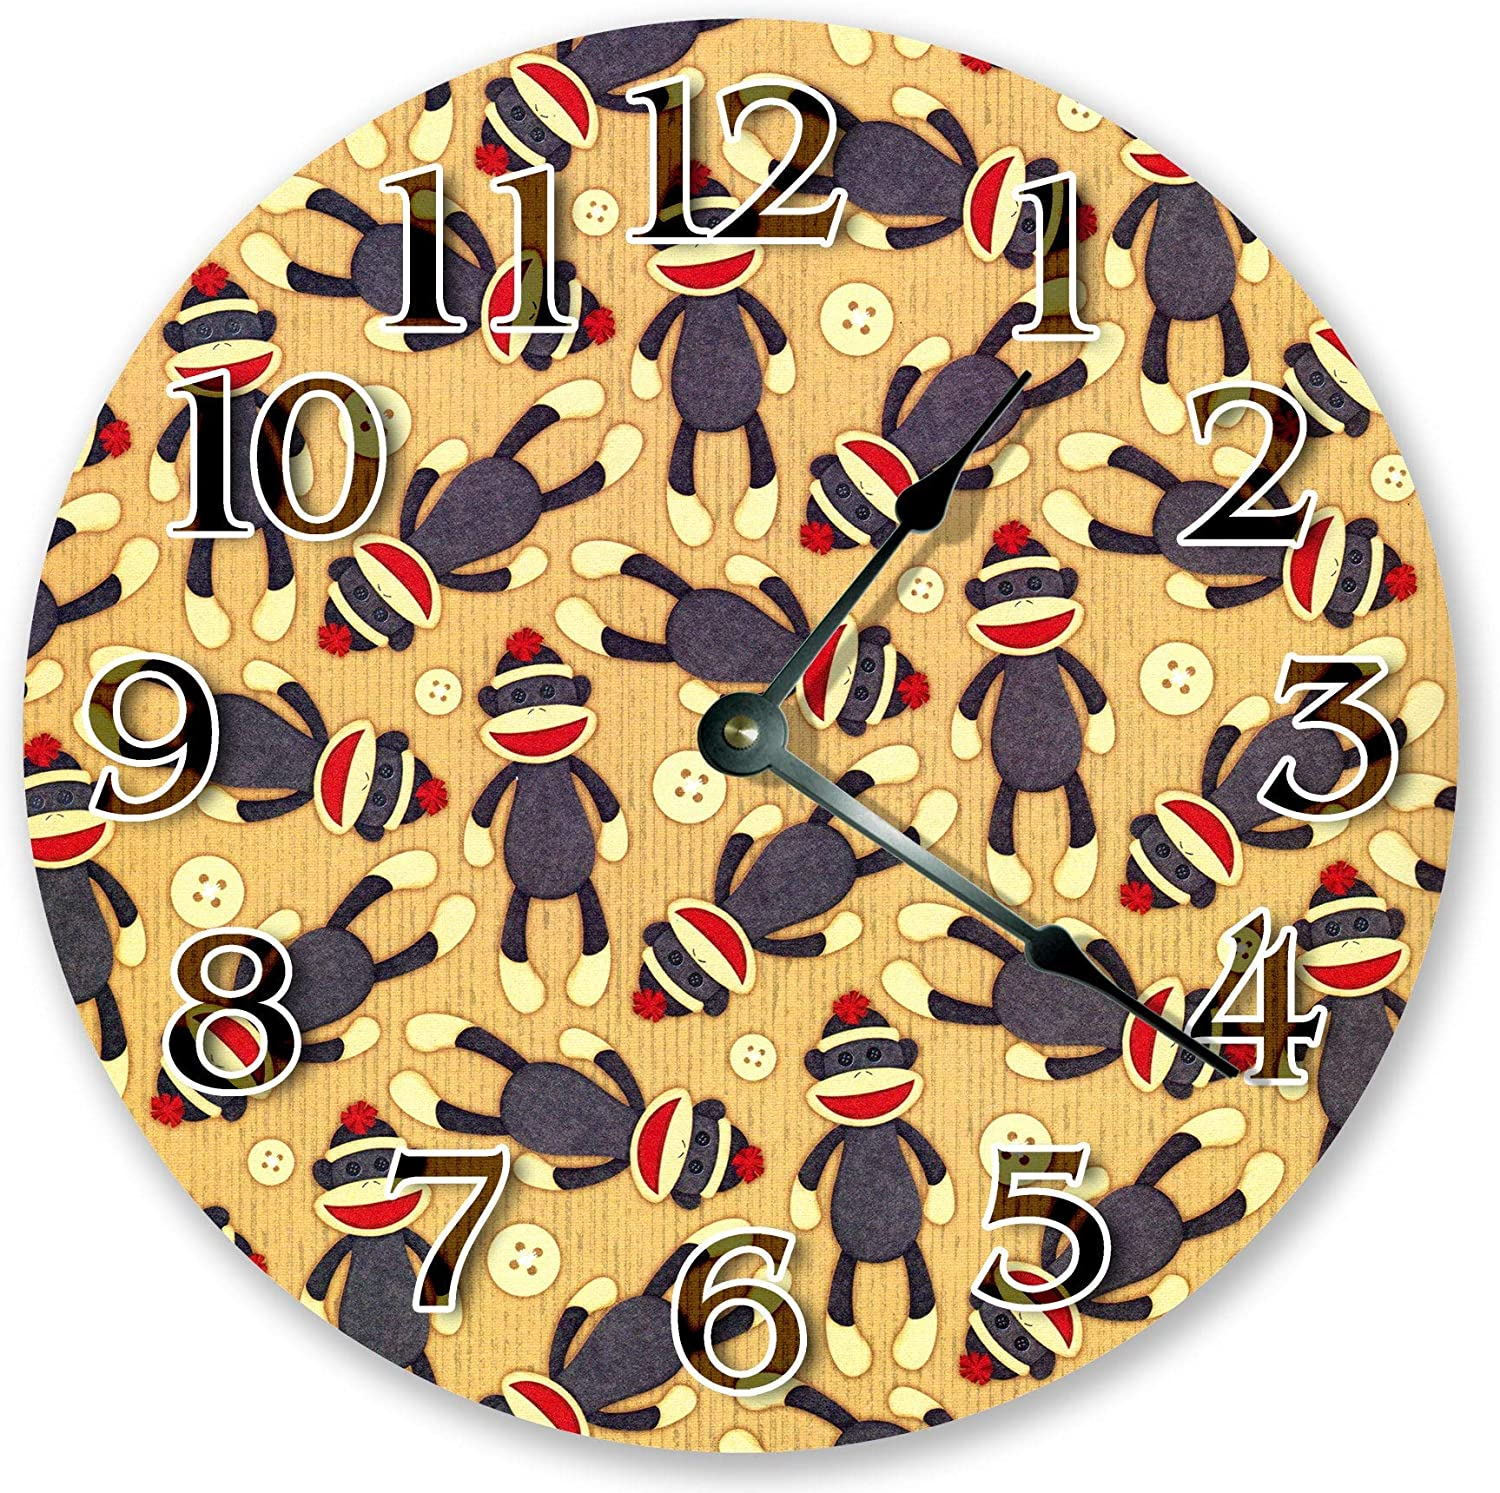 Sock Monkeys Large Wooden Wall Clock Nursery Decor Modern Round Wall Clock with Large Numbers